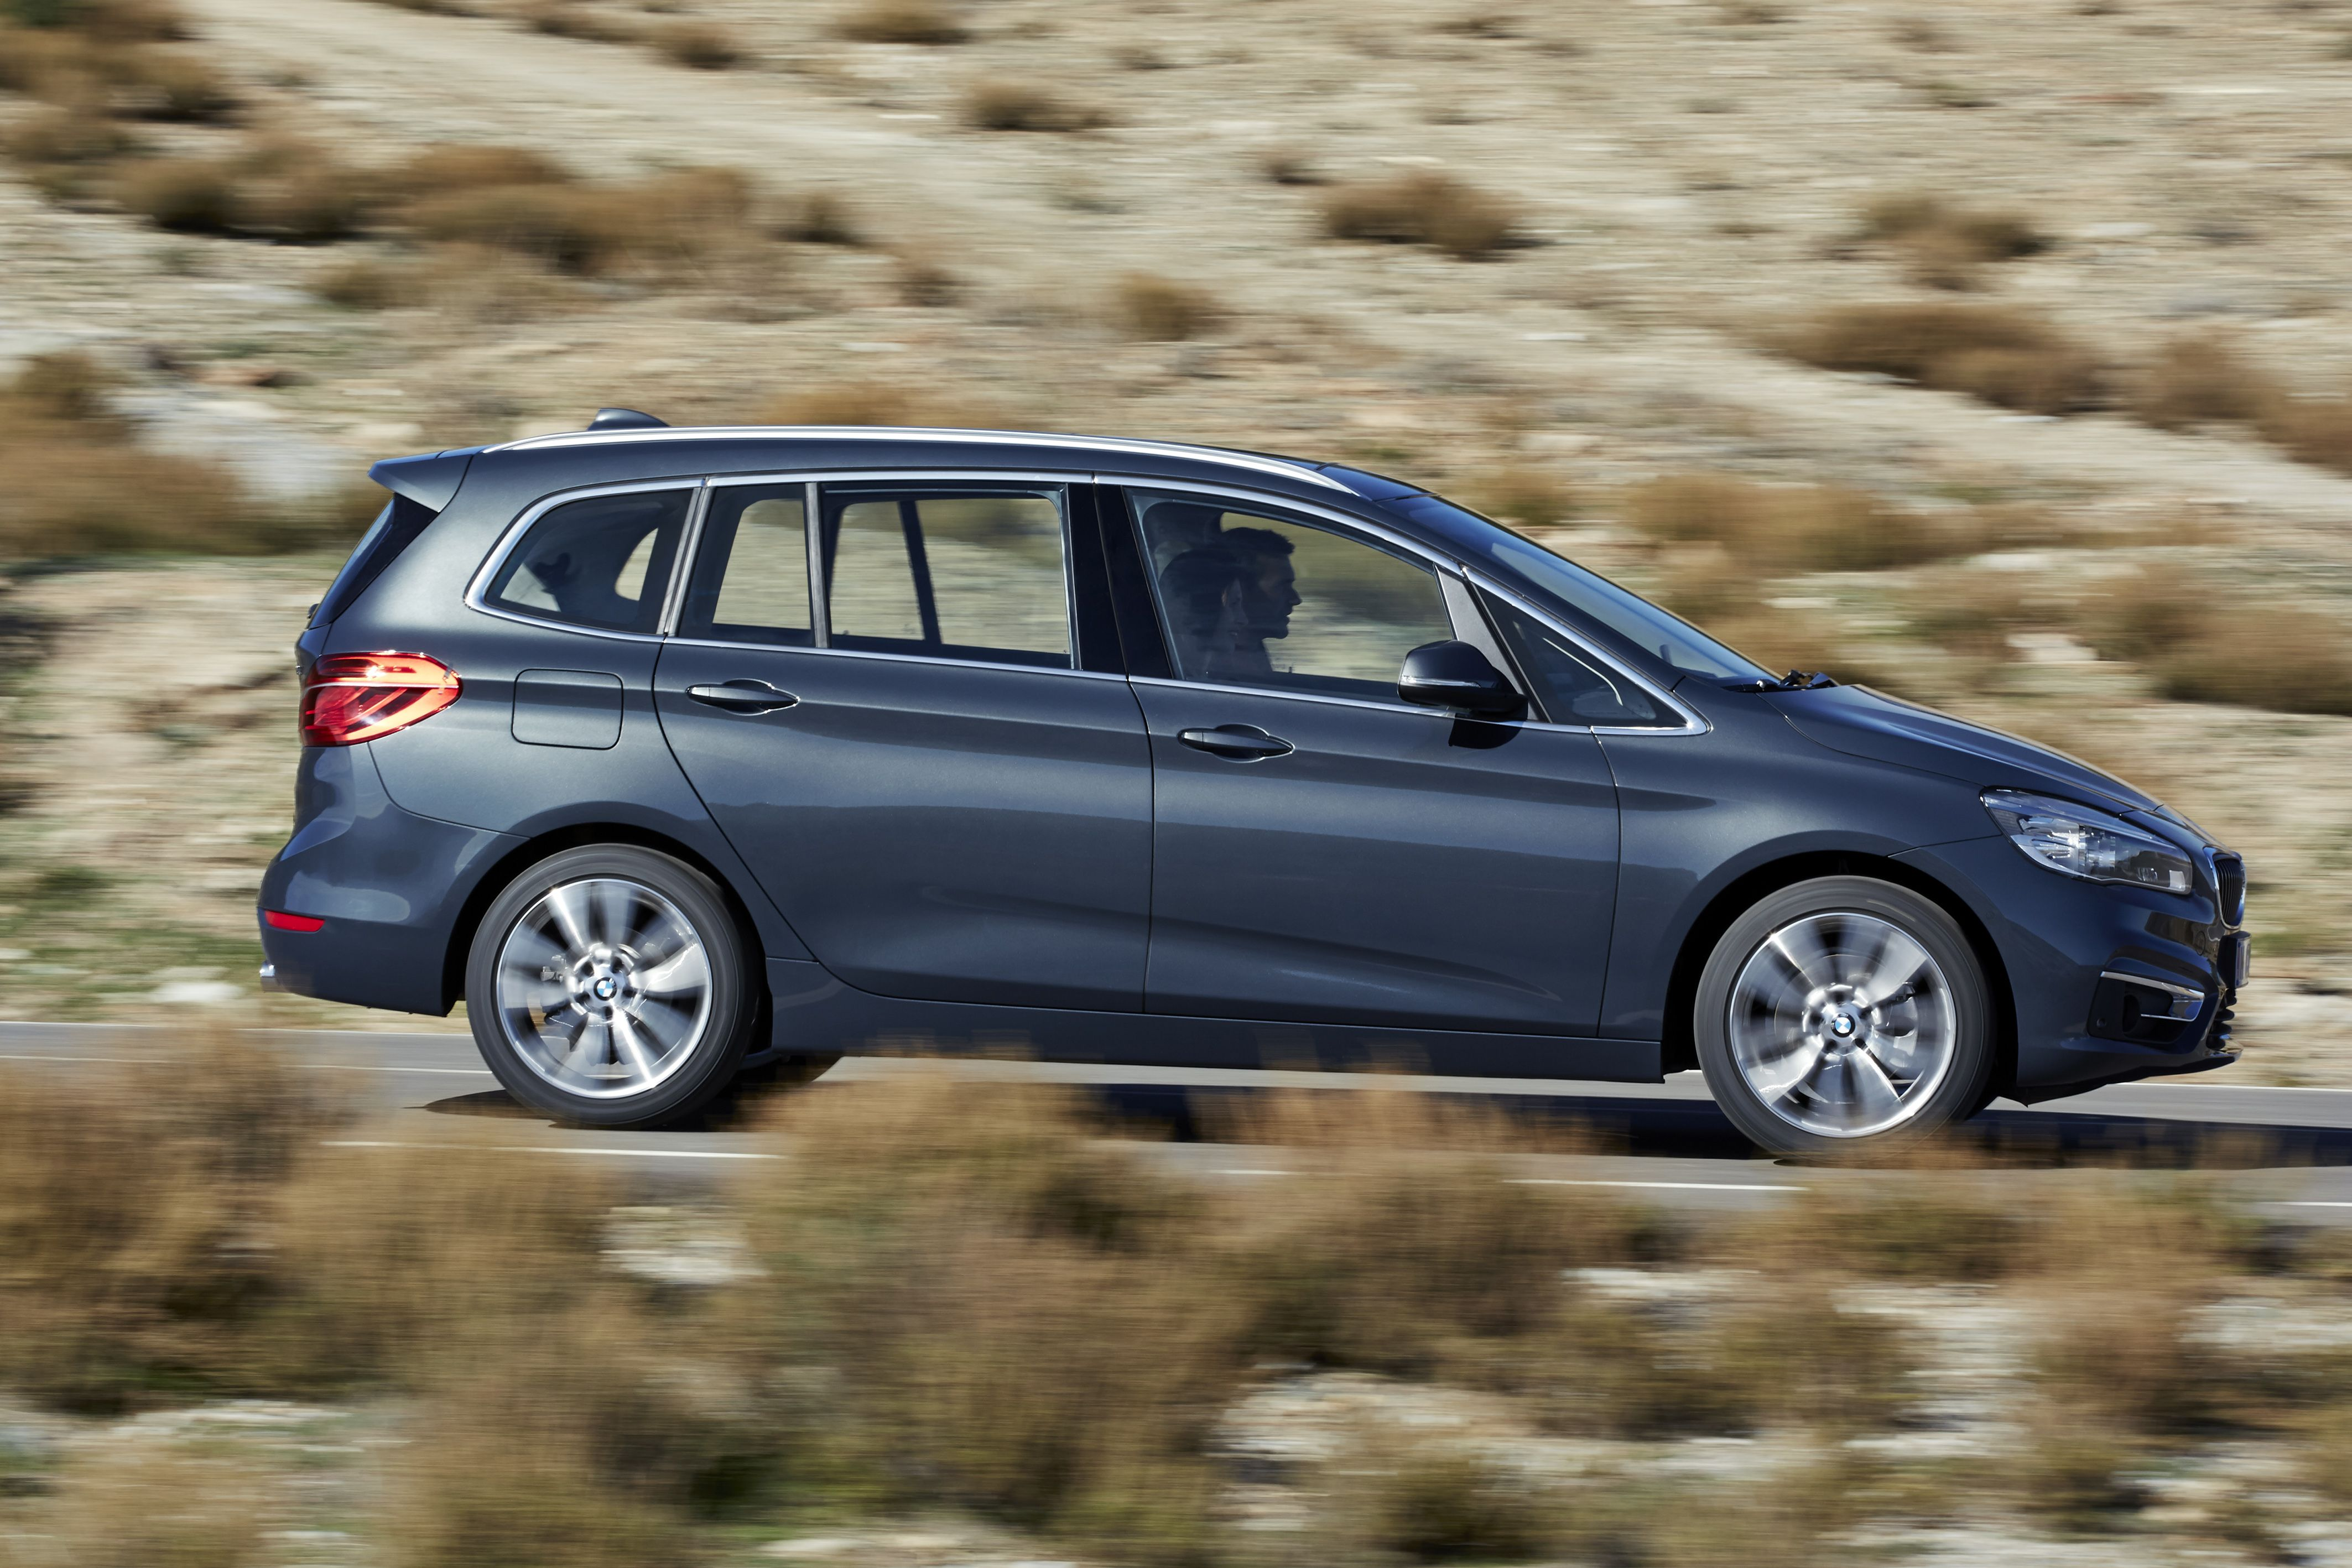 bmw series 2 grand tourer in croatia - kongres – europe events and